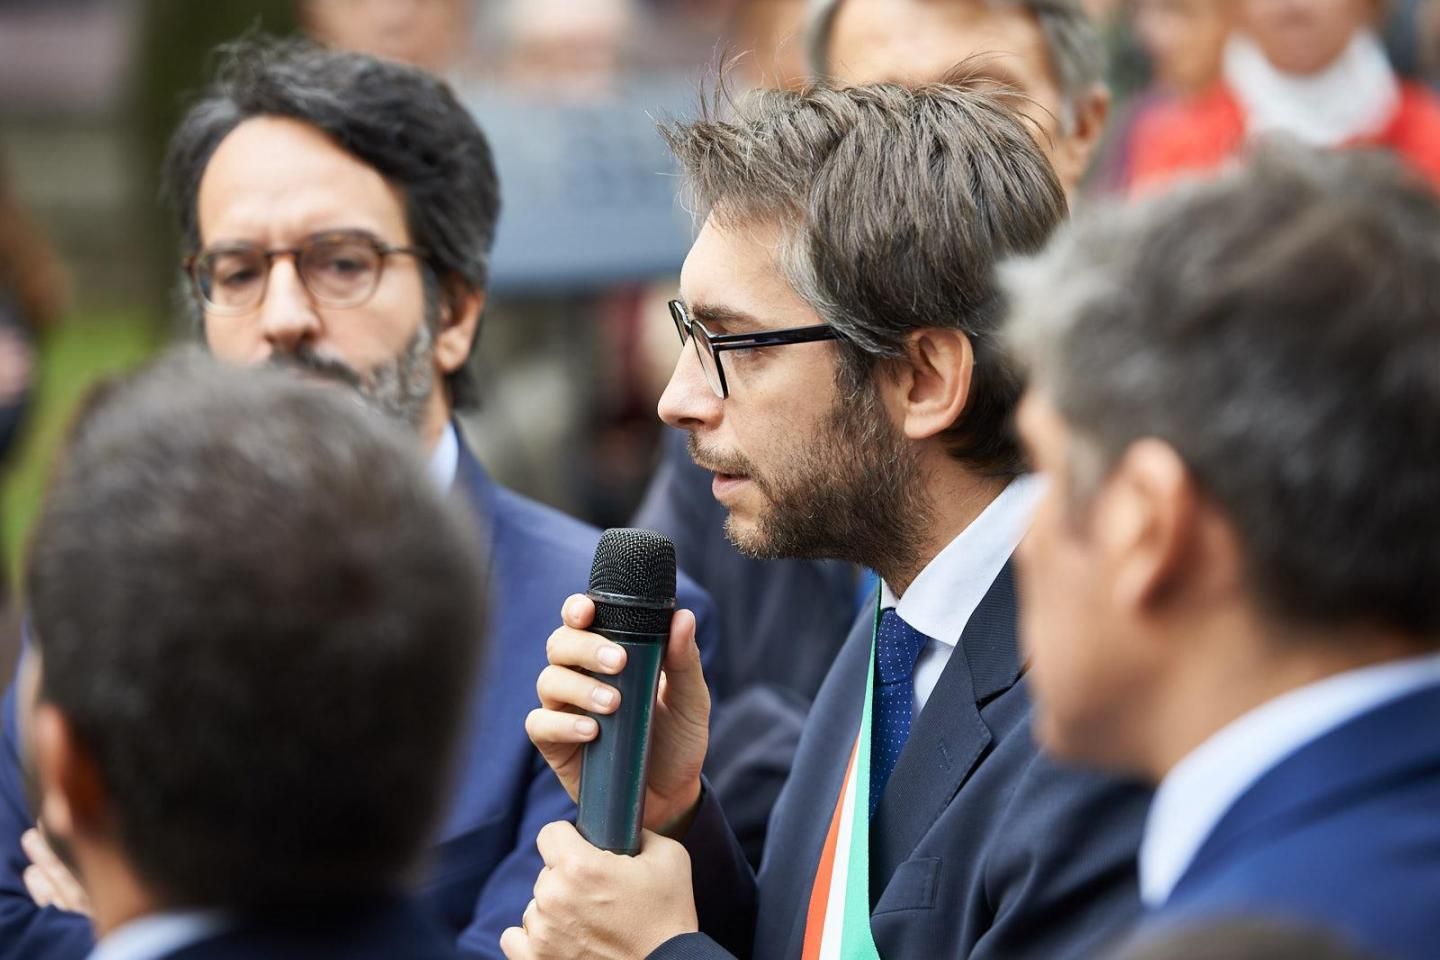 Pierfrancesco Maran, Councillor for City Planning, Green and Agriculture of the City of Milan